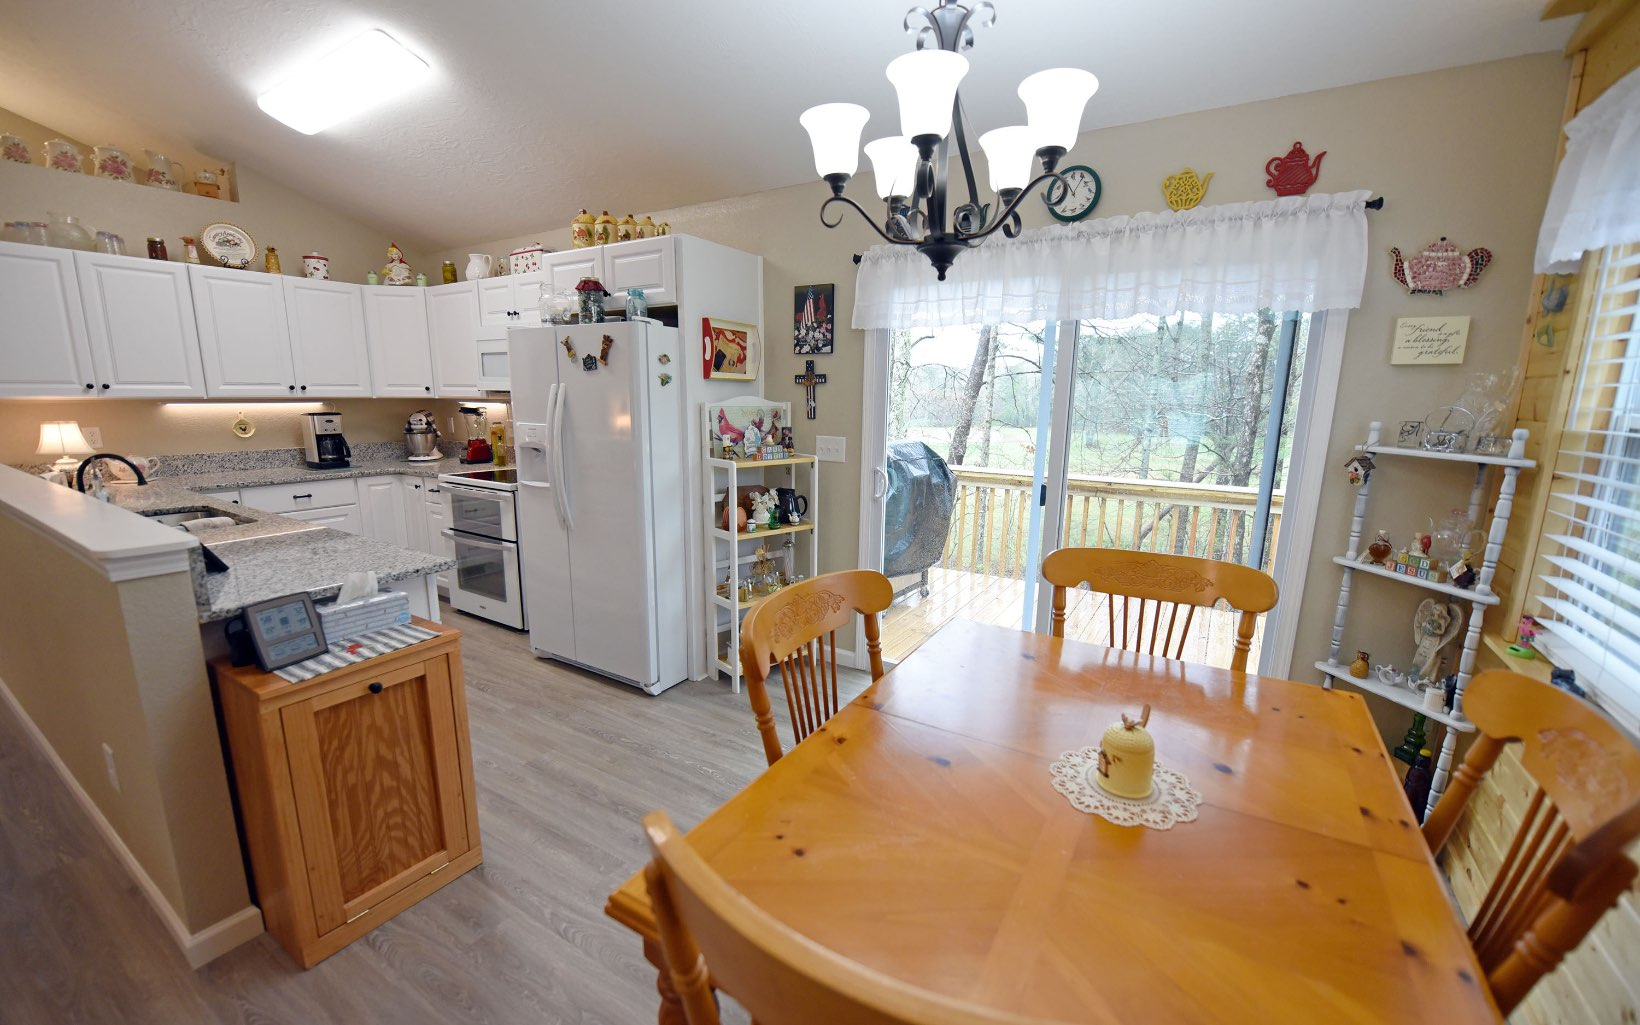 111 CHRISTIAN CT, Blairsville, Georgia 30512, 2 Bedrooms Bedrooms, ,3 BathroomsBathrooms,Single Family,For Sale,111 CHRISTIAN CT,305609